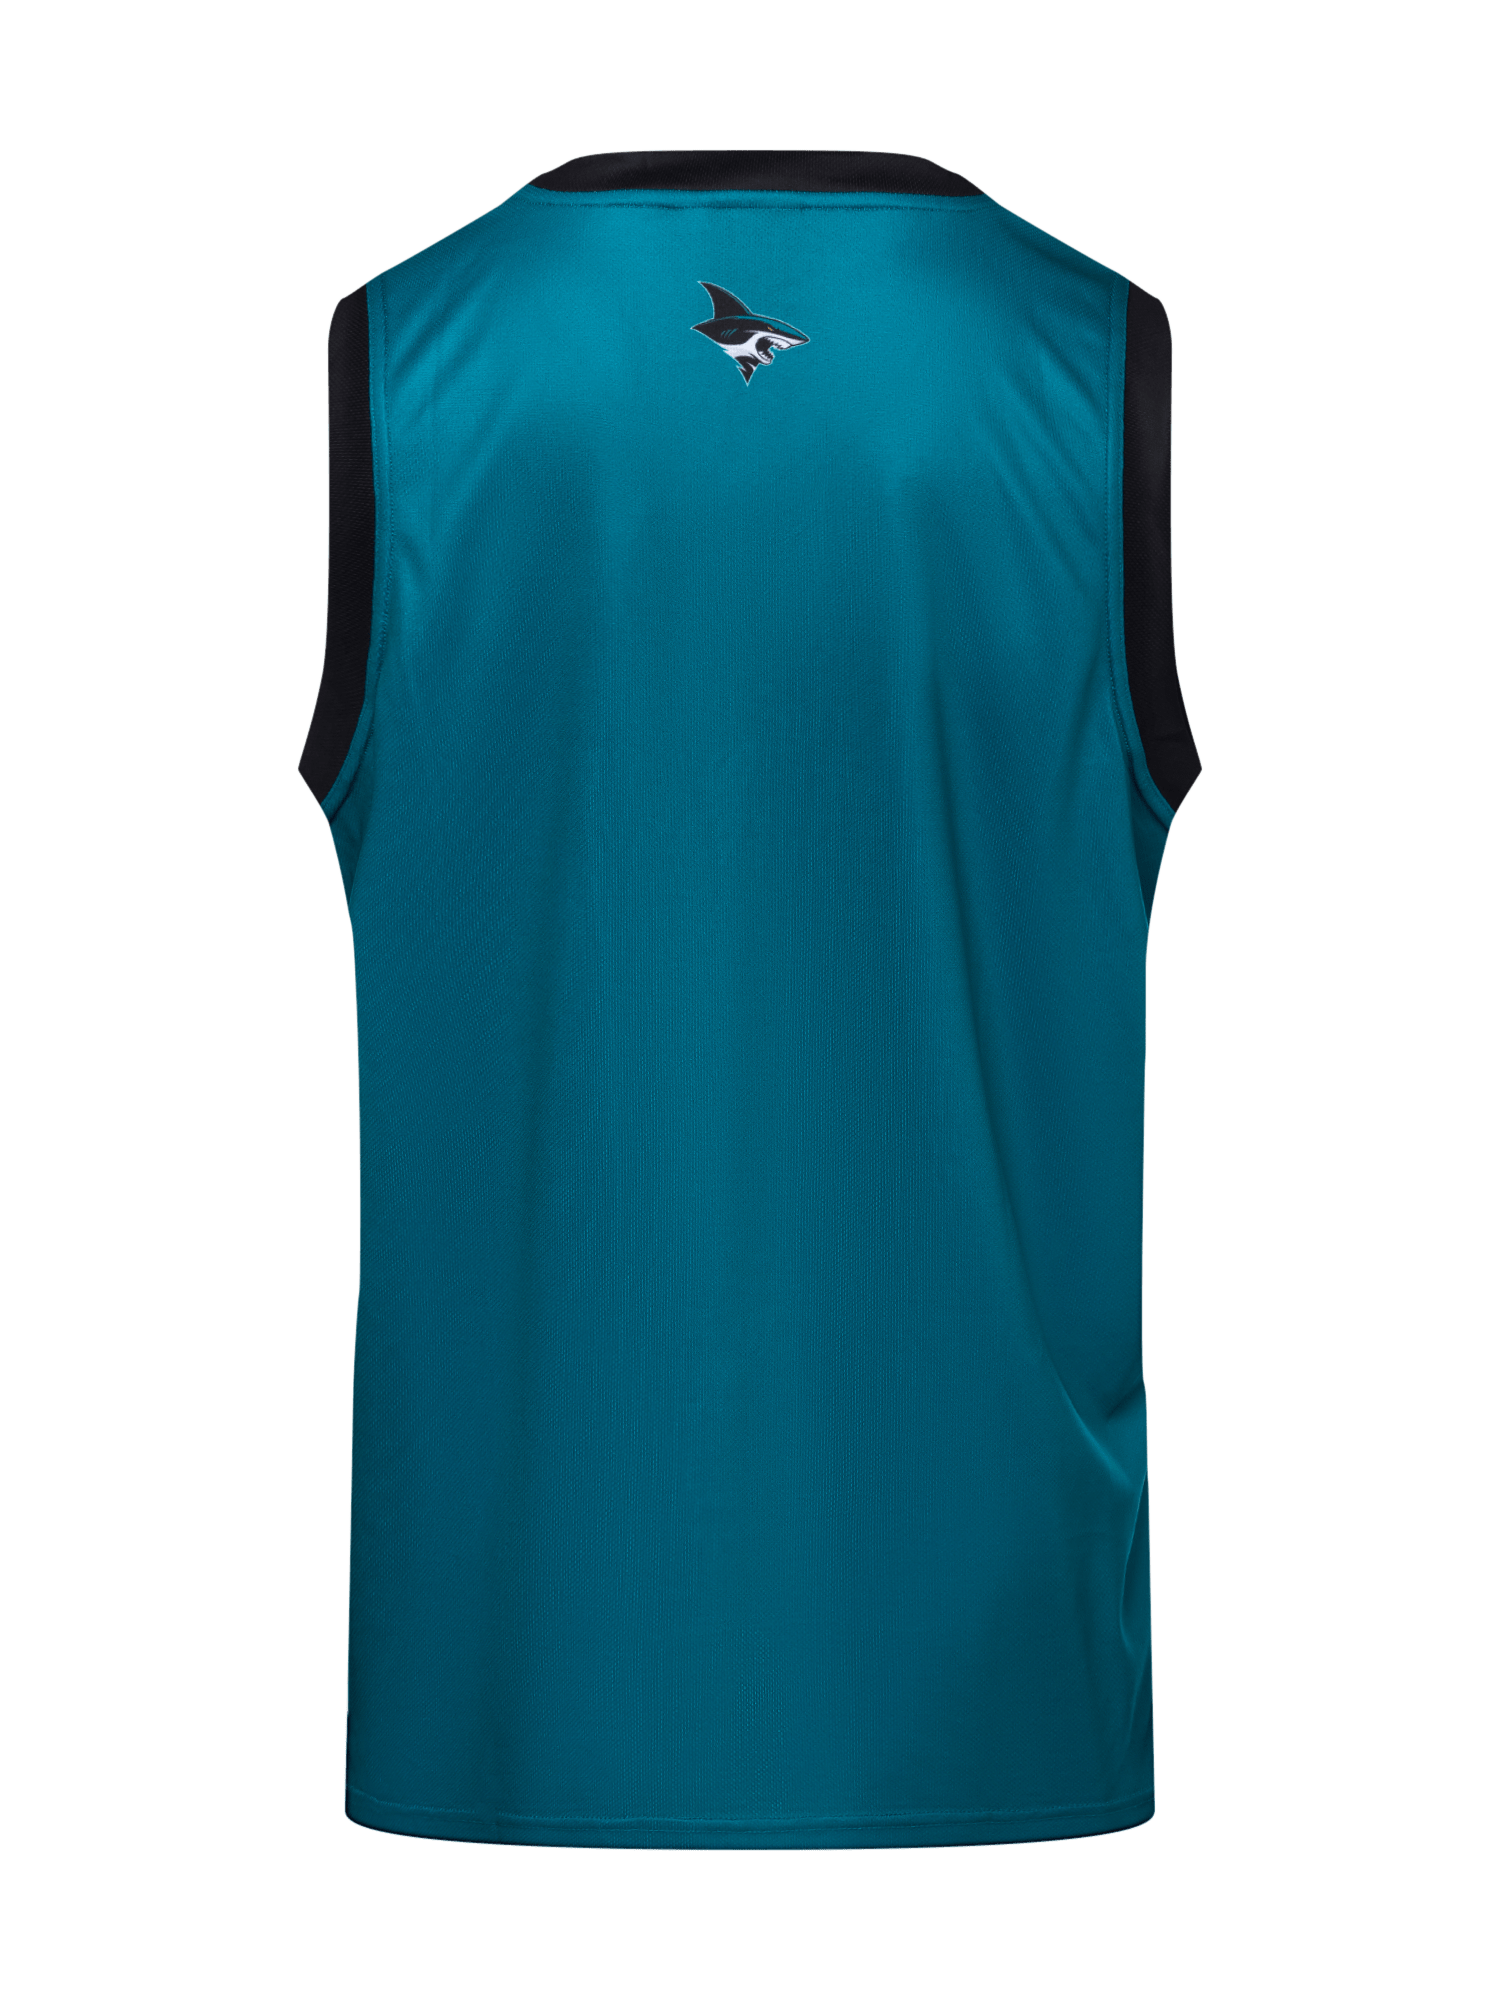 San Jose Sharks Hockey Tank - Hockey Sauce Kit cb48b87ea31a